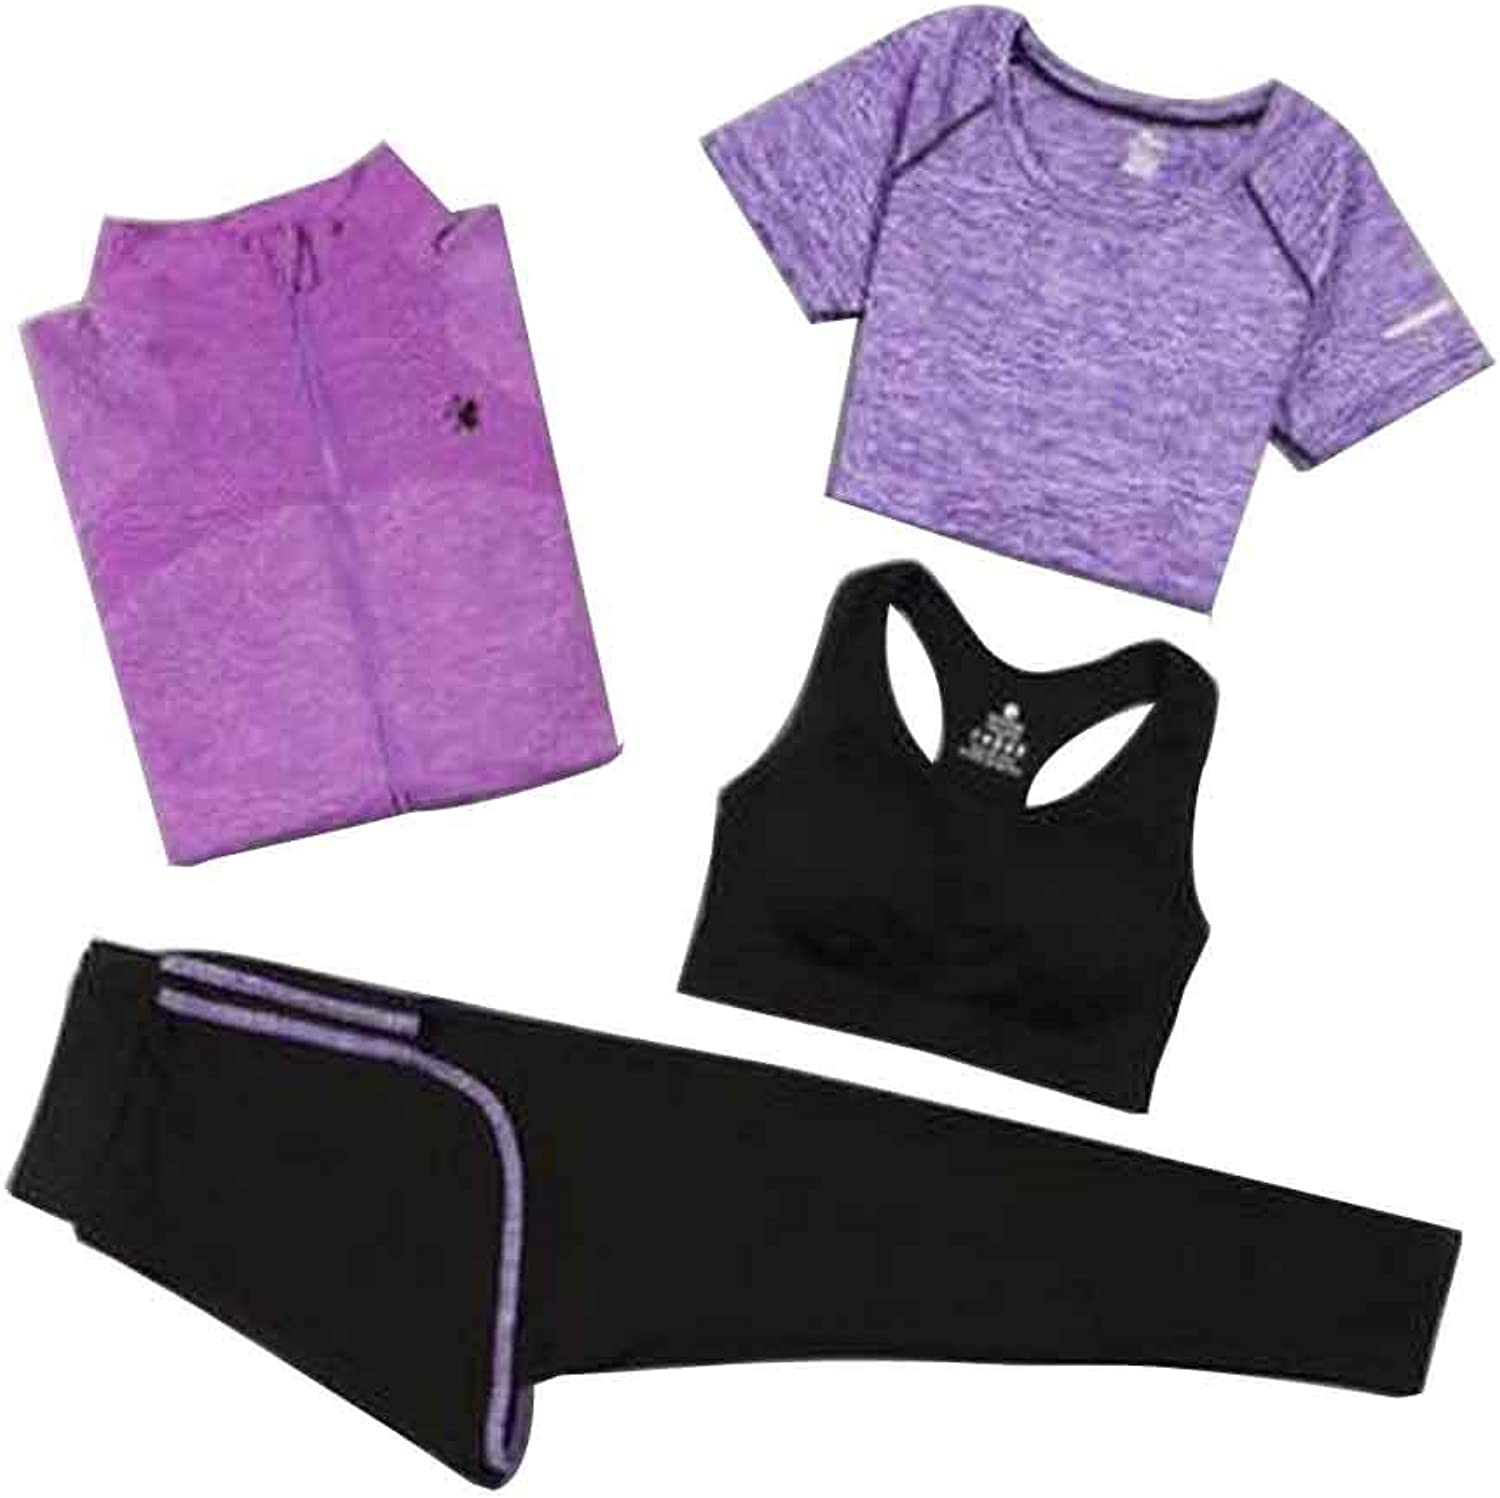 Sport Suit for Women Quick Drying Clothing for Ladies Yoga Clothing [M]